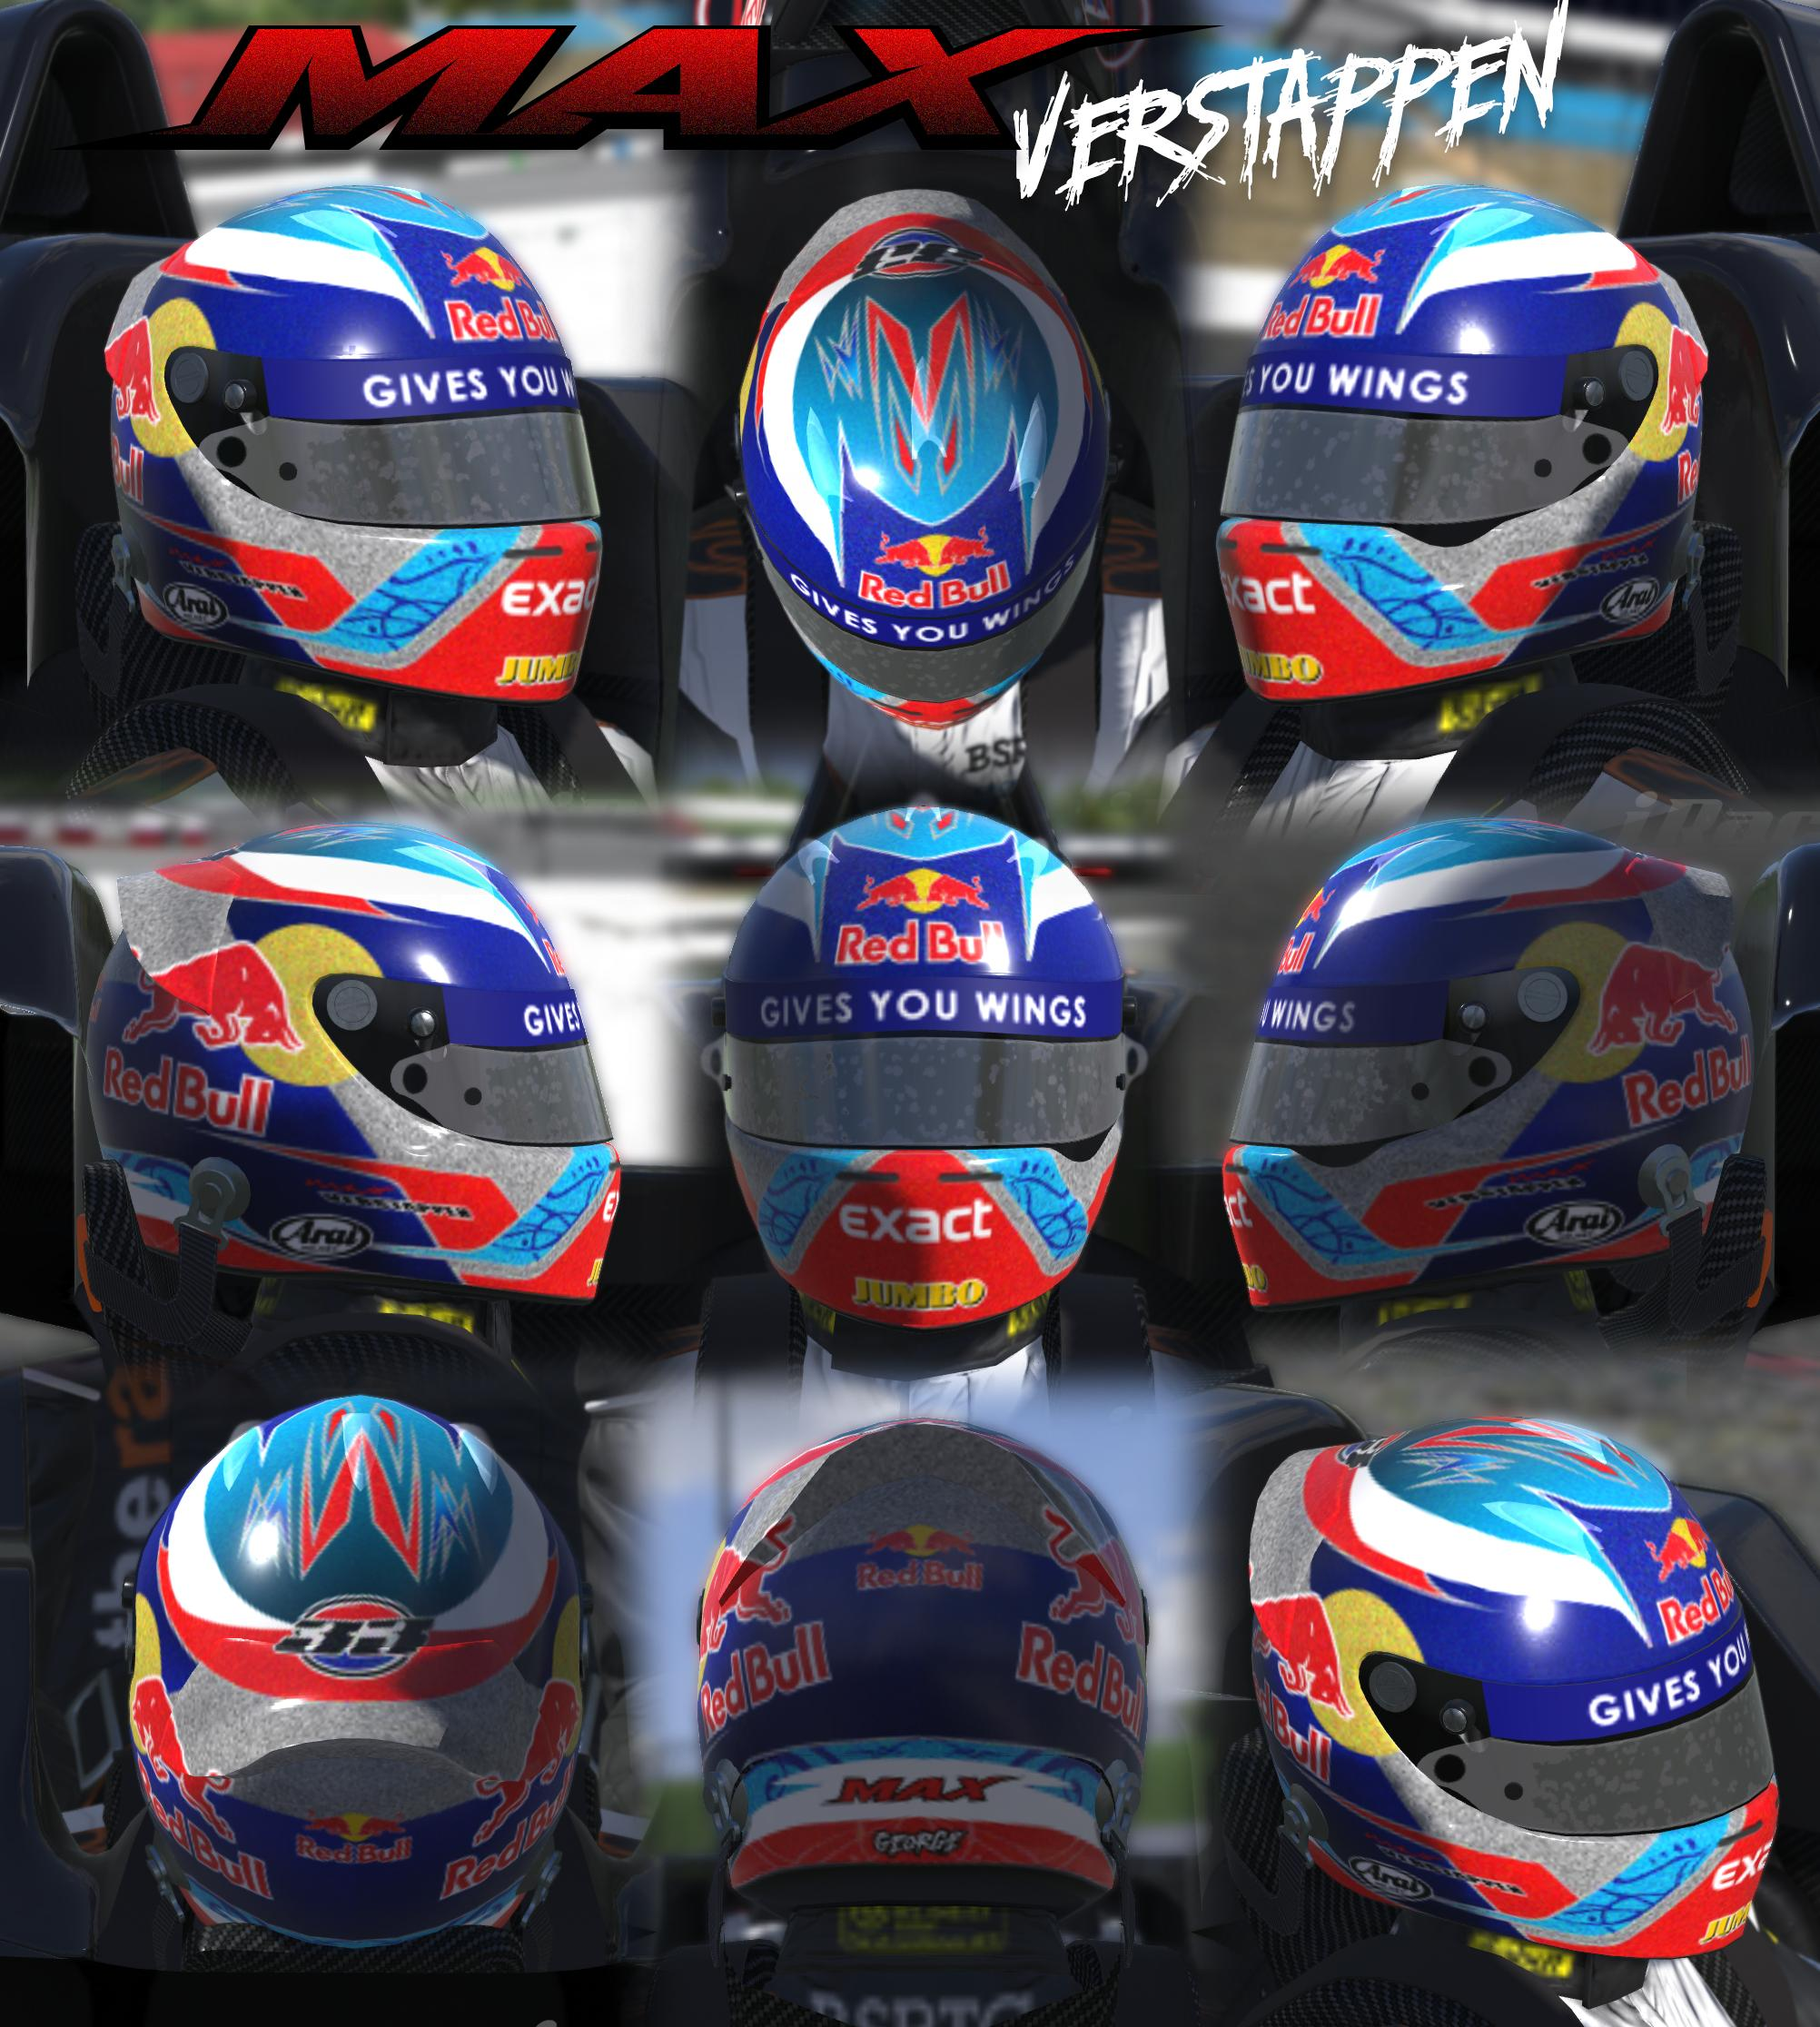 Preview of Max Verstappen 2016 by George Simmons